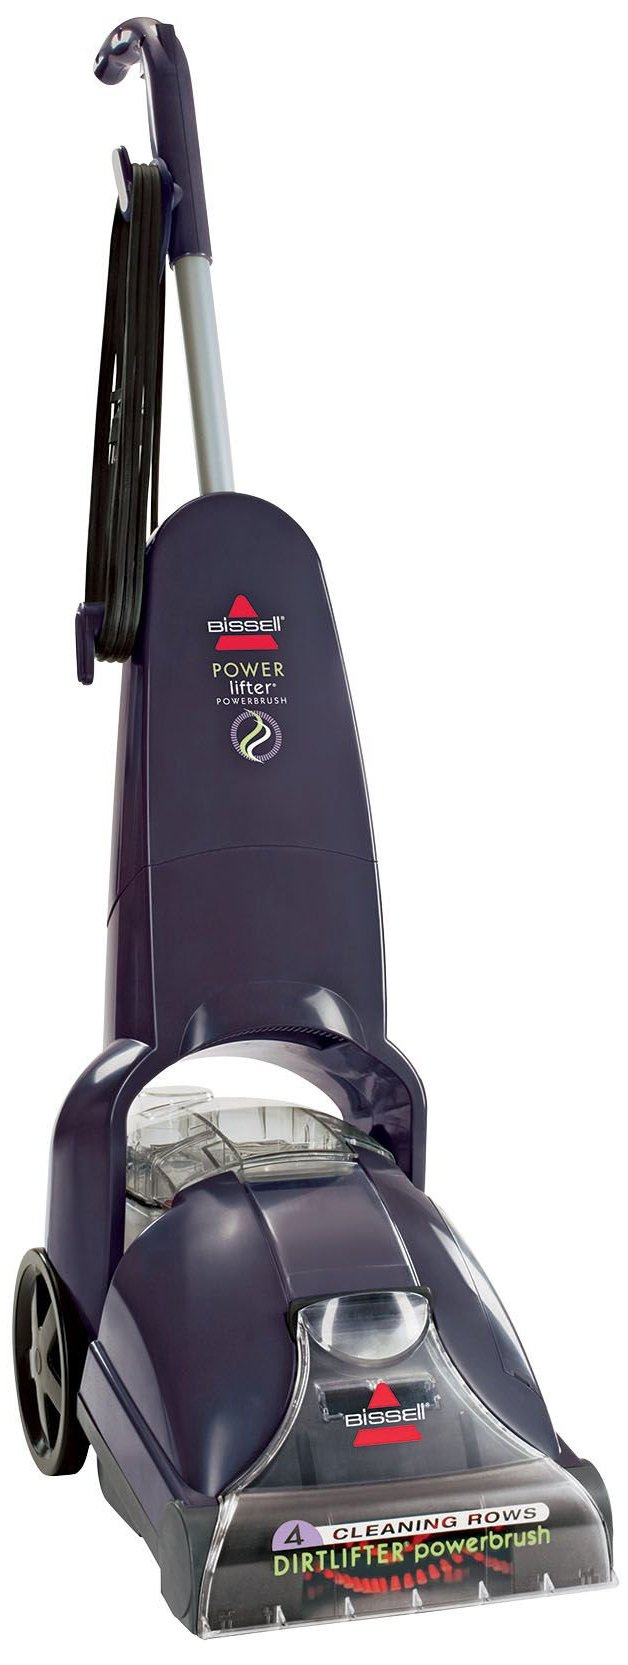 BISSELL PowerLifter PowerBrush Upright Carpet Cleaner and Shampooer, 1622 by Bissell